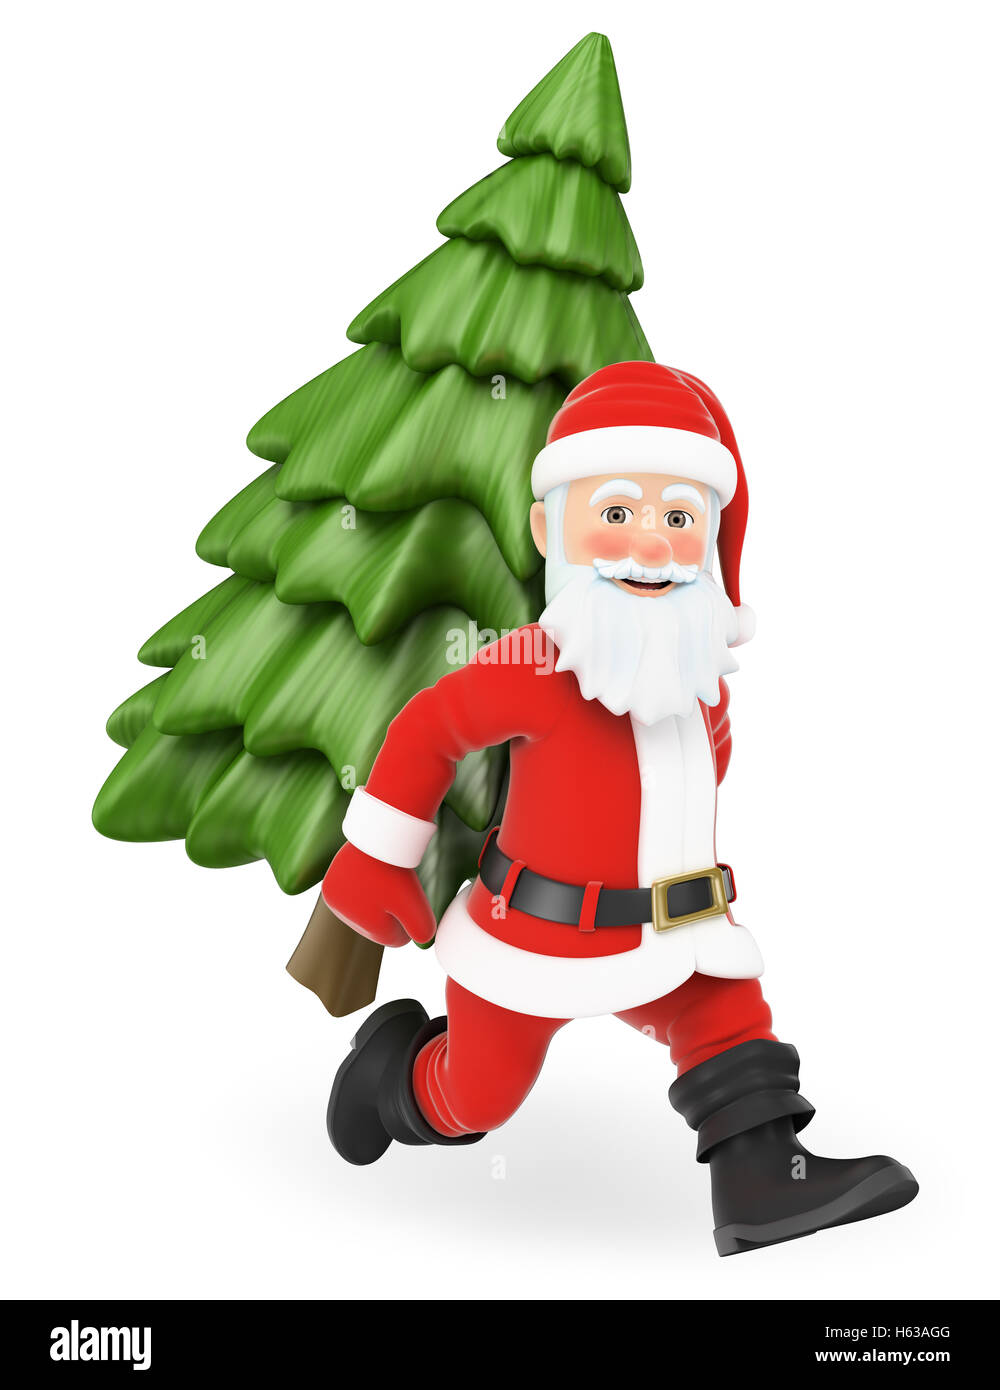 cf4ec4fa0e275 3d christmas people illustration. Santa Claus running with a fir tree on  back. Isolated white background.